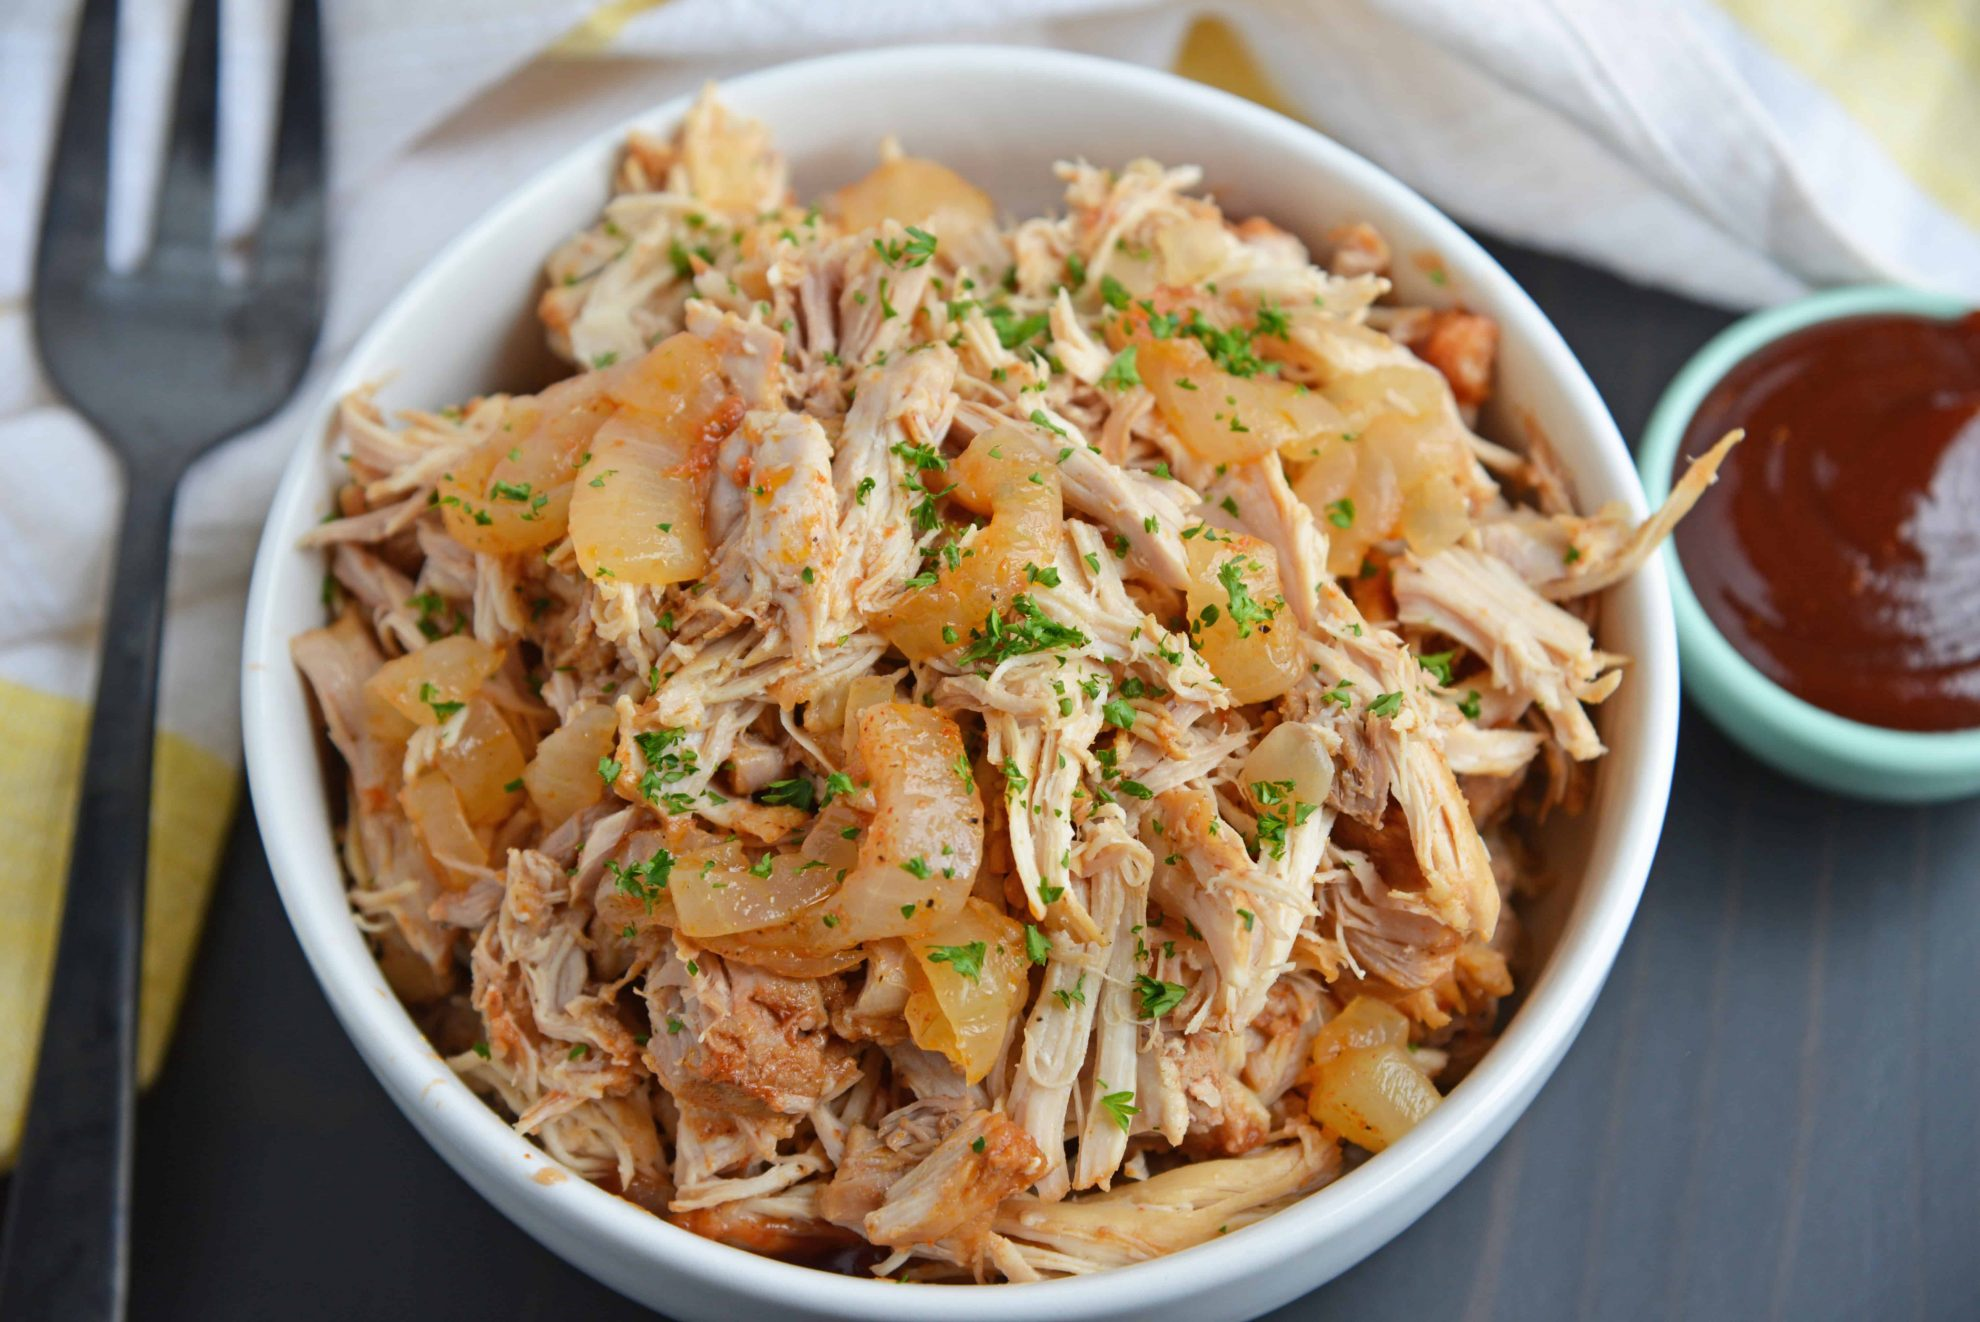 Shredded BBQ Chicken with caramelized onion